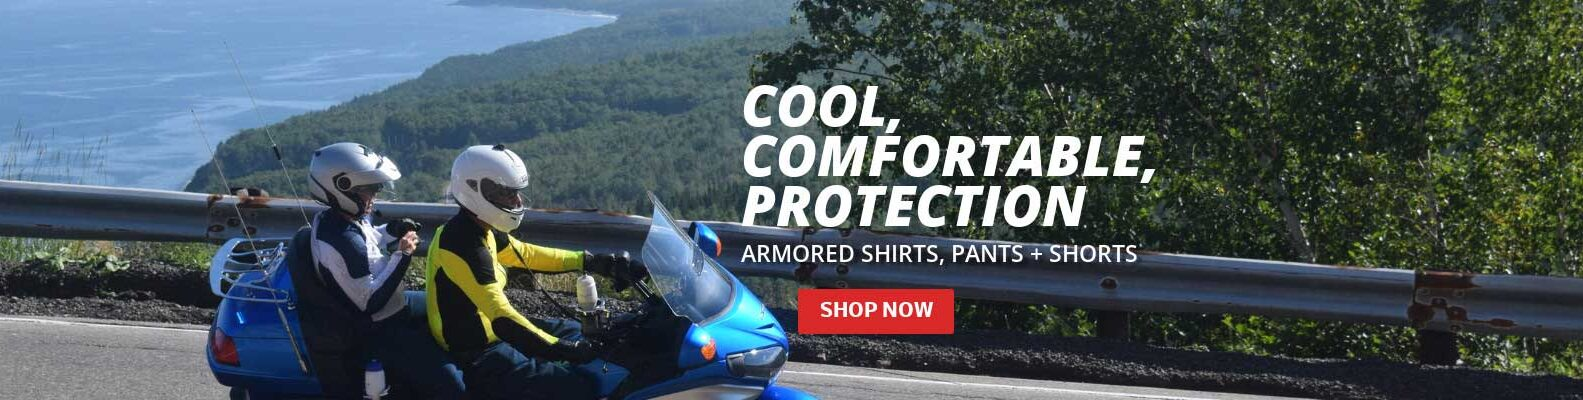 Slider Image for our Cool, Comfortable Armored Protection from Bohn Body Armor - Motorcycle Gear for Riding in the Heat